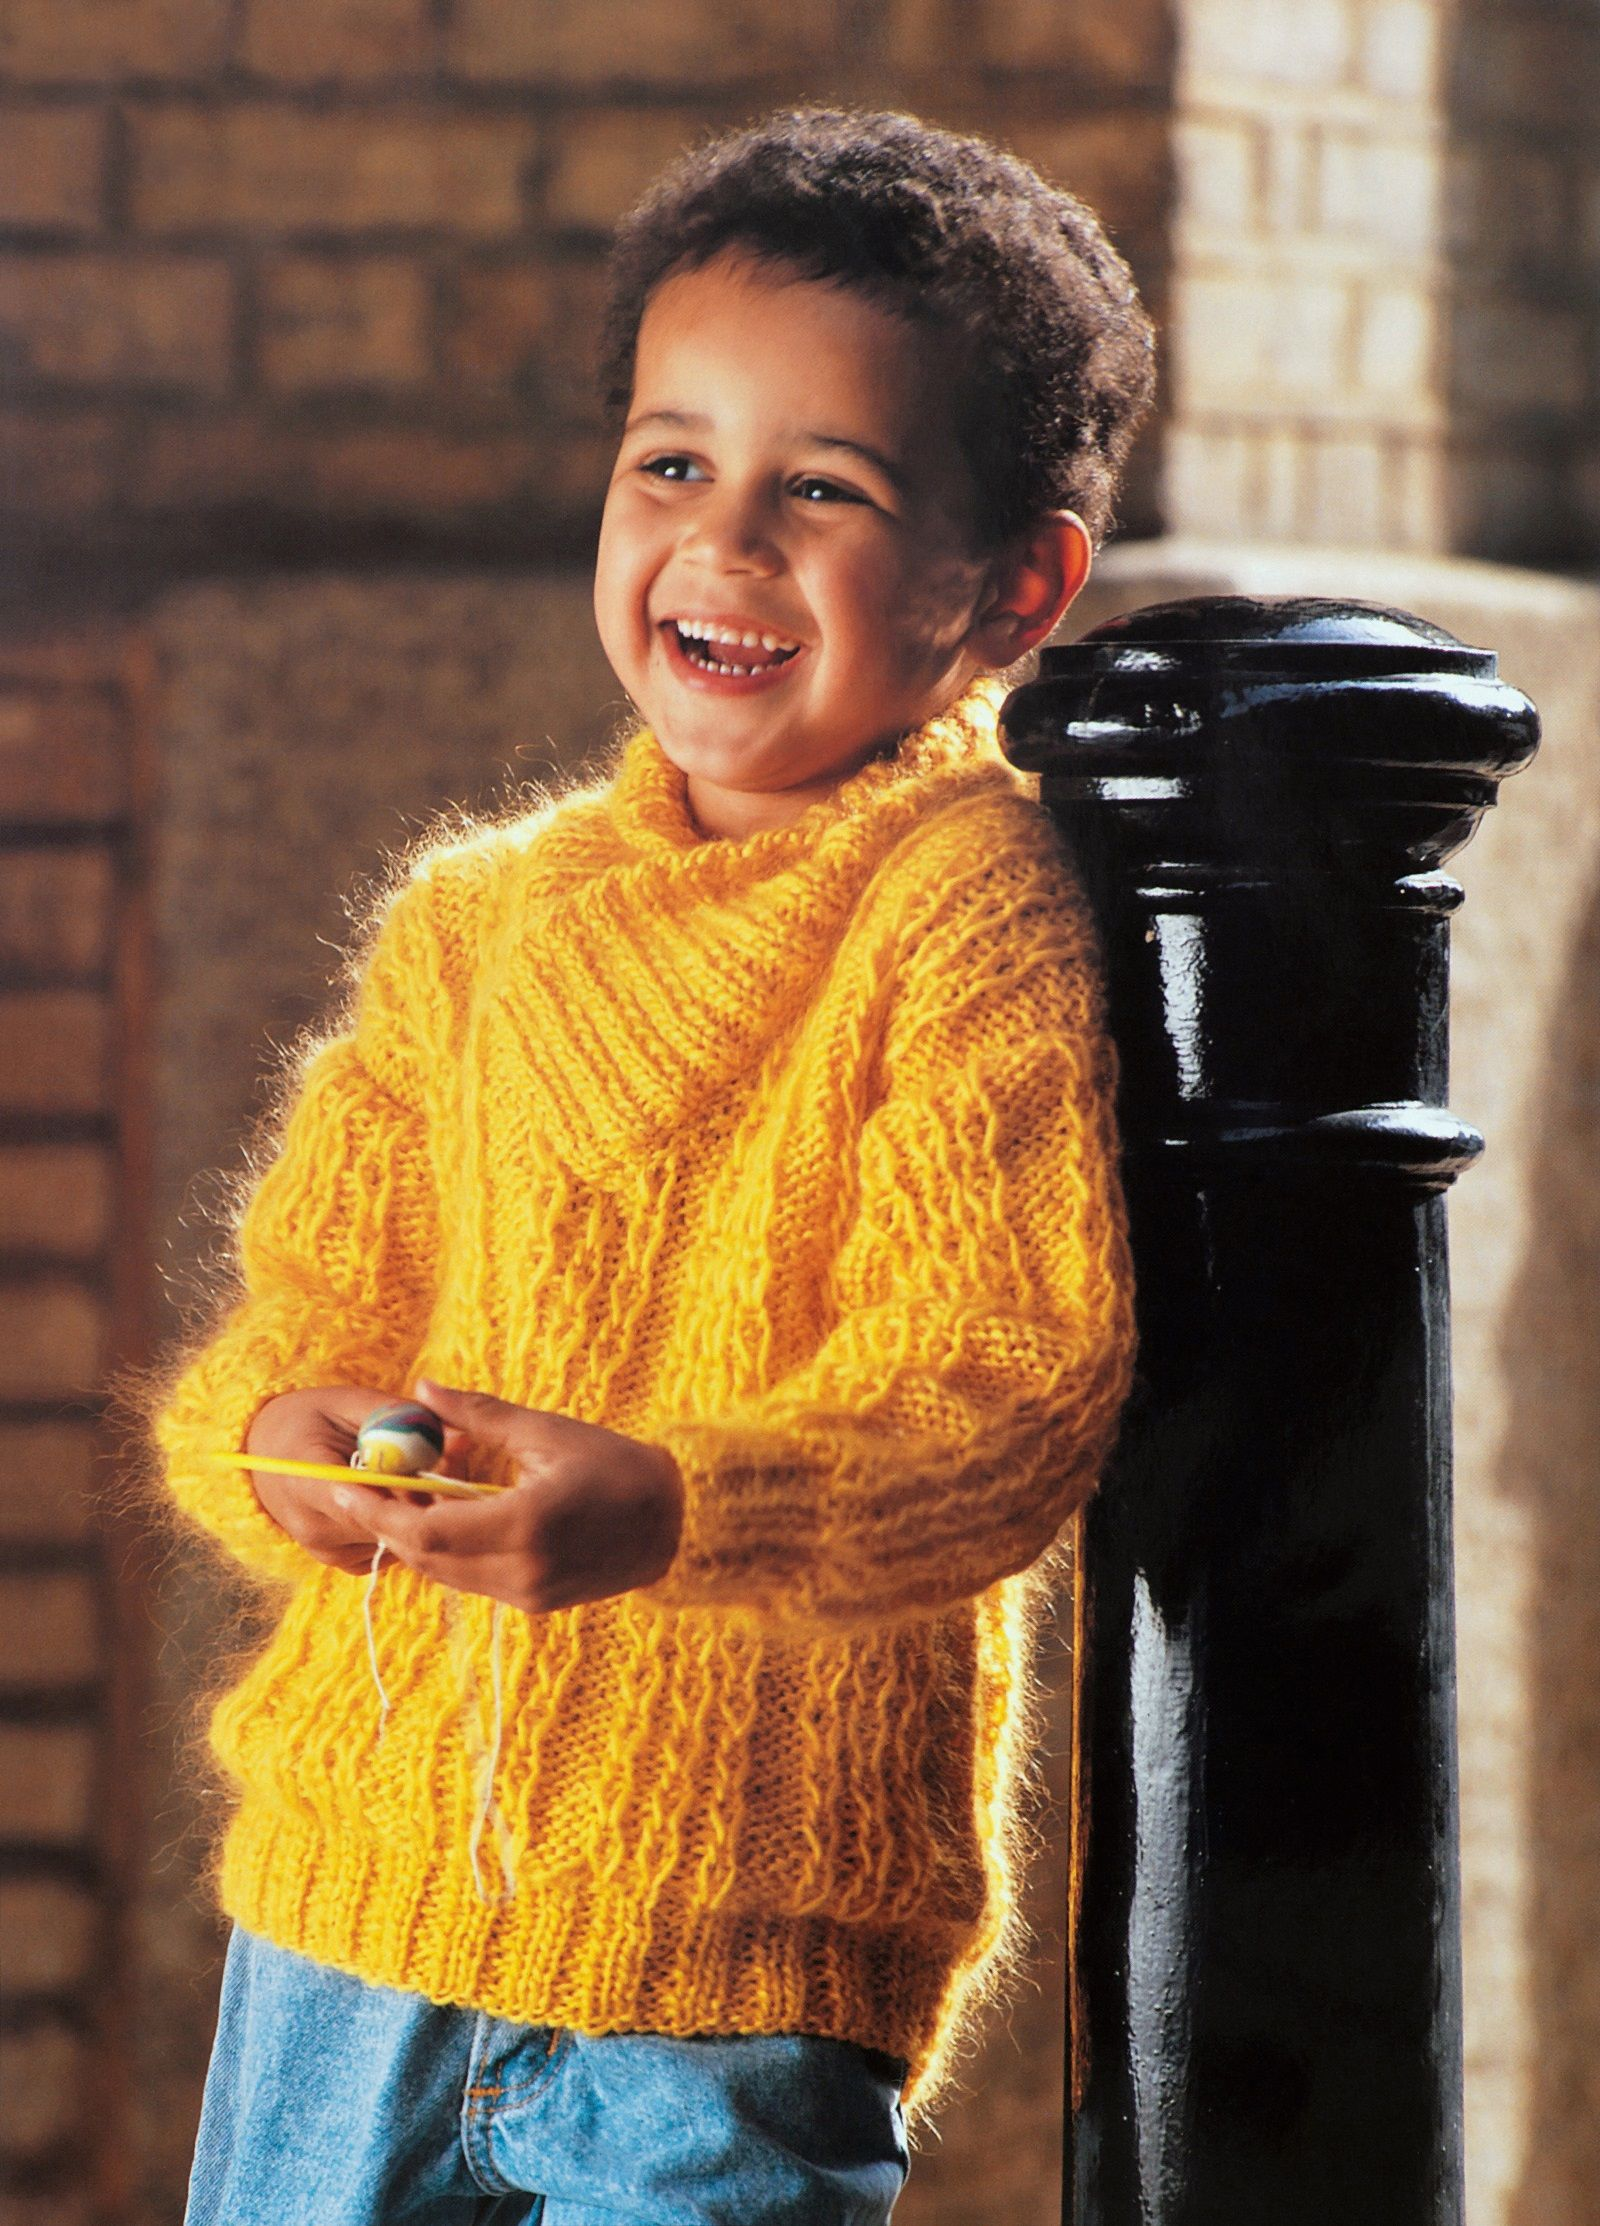 Mohair pinterik0 boys kids mohair sweater photo from sirdar knitting pattern fuzzy fluffy childrens bankloansurffo Image collections